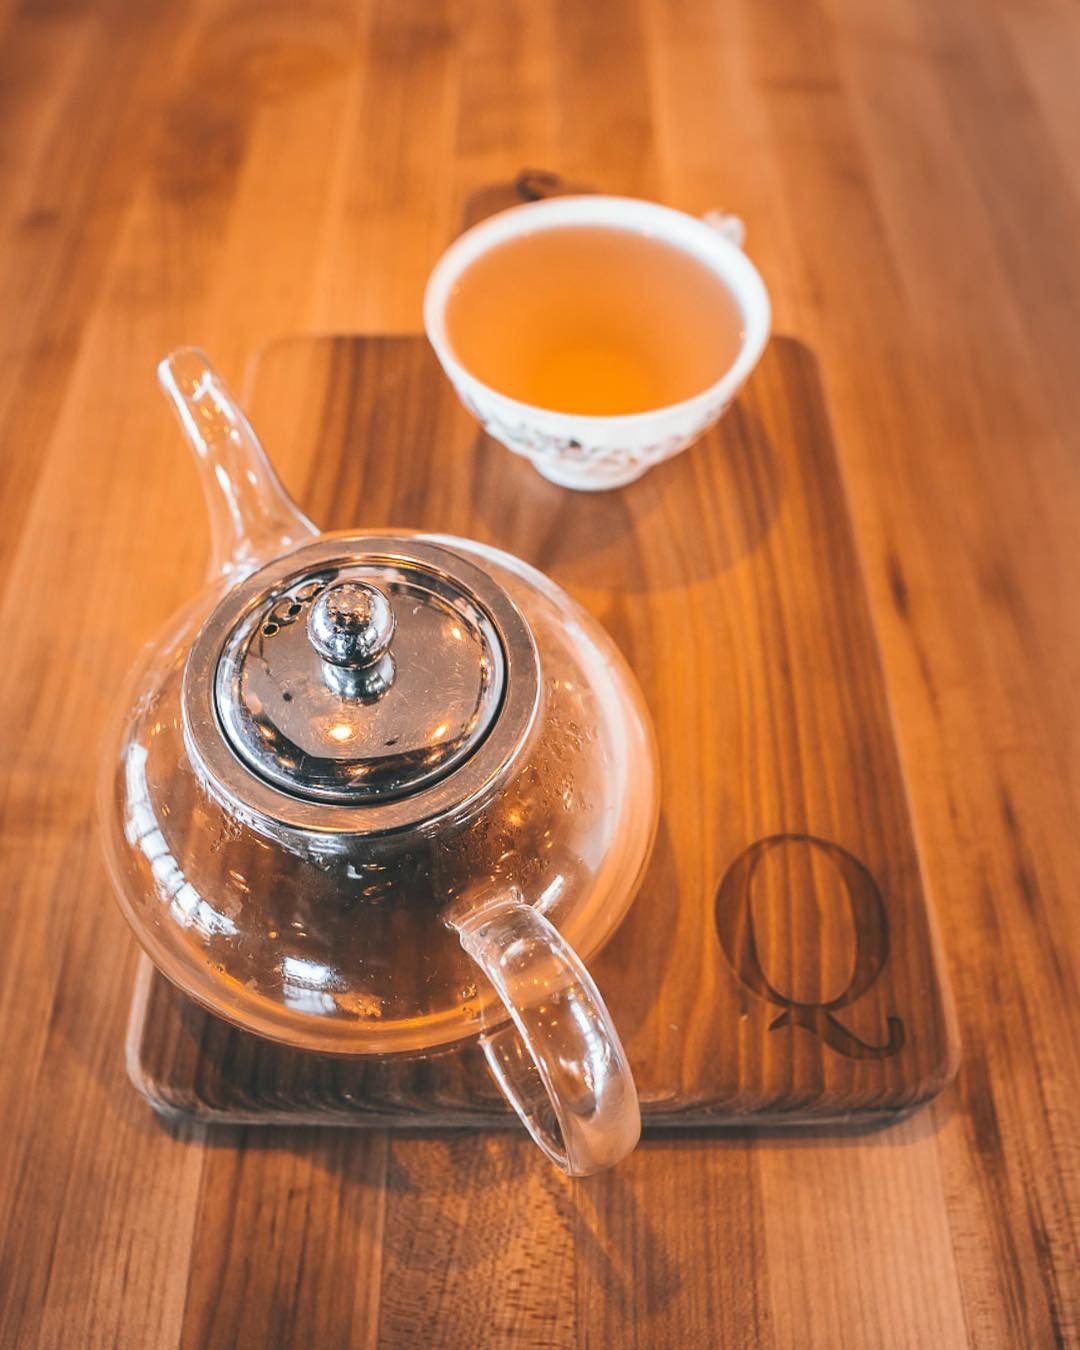 LOOSE LEAF TEAS BREWED TO PERFECTION!